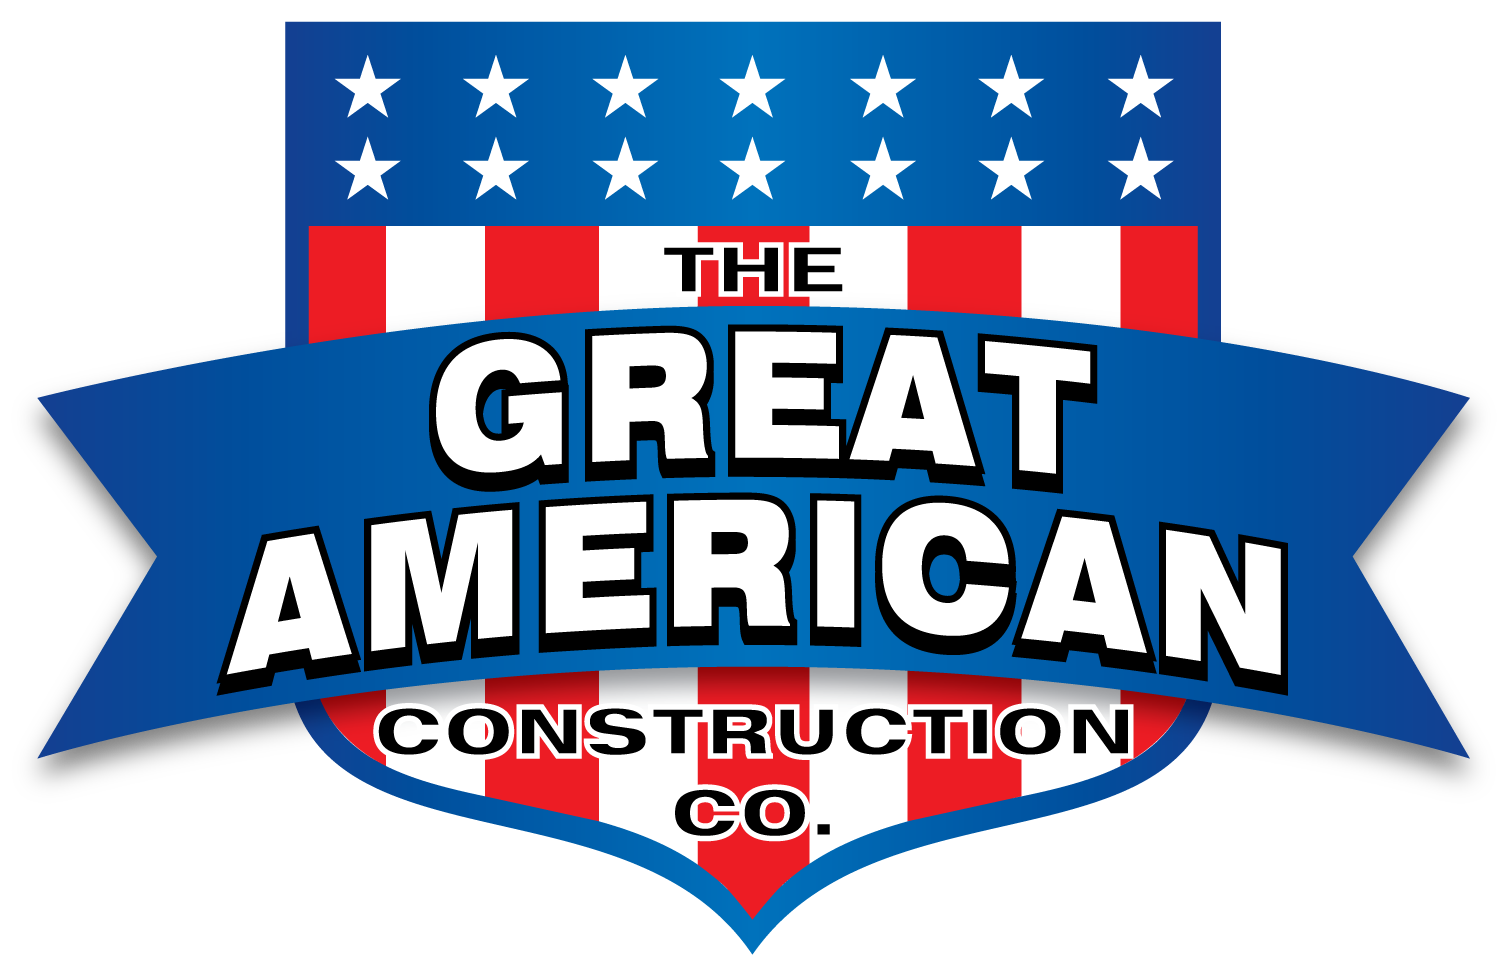 The Great American Construction Co.